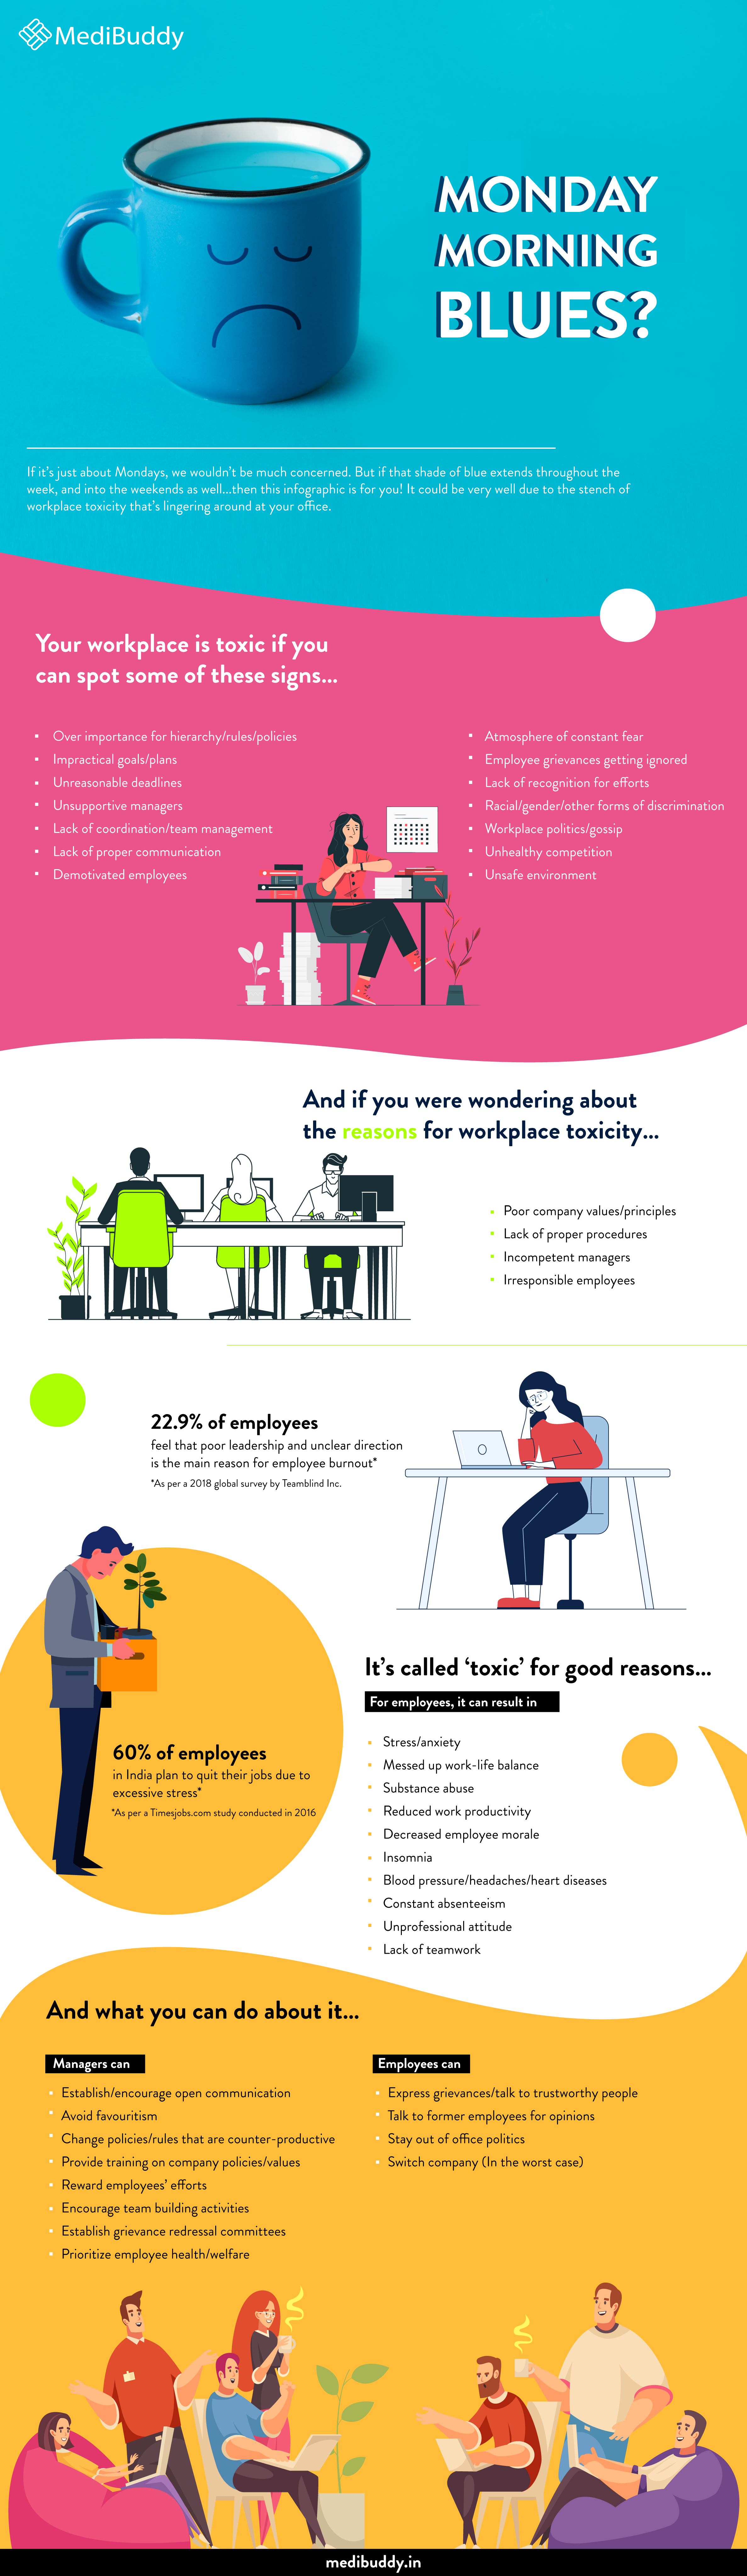 Toxic work culture and its effects